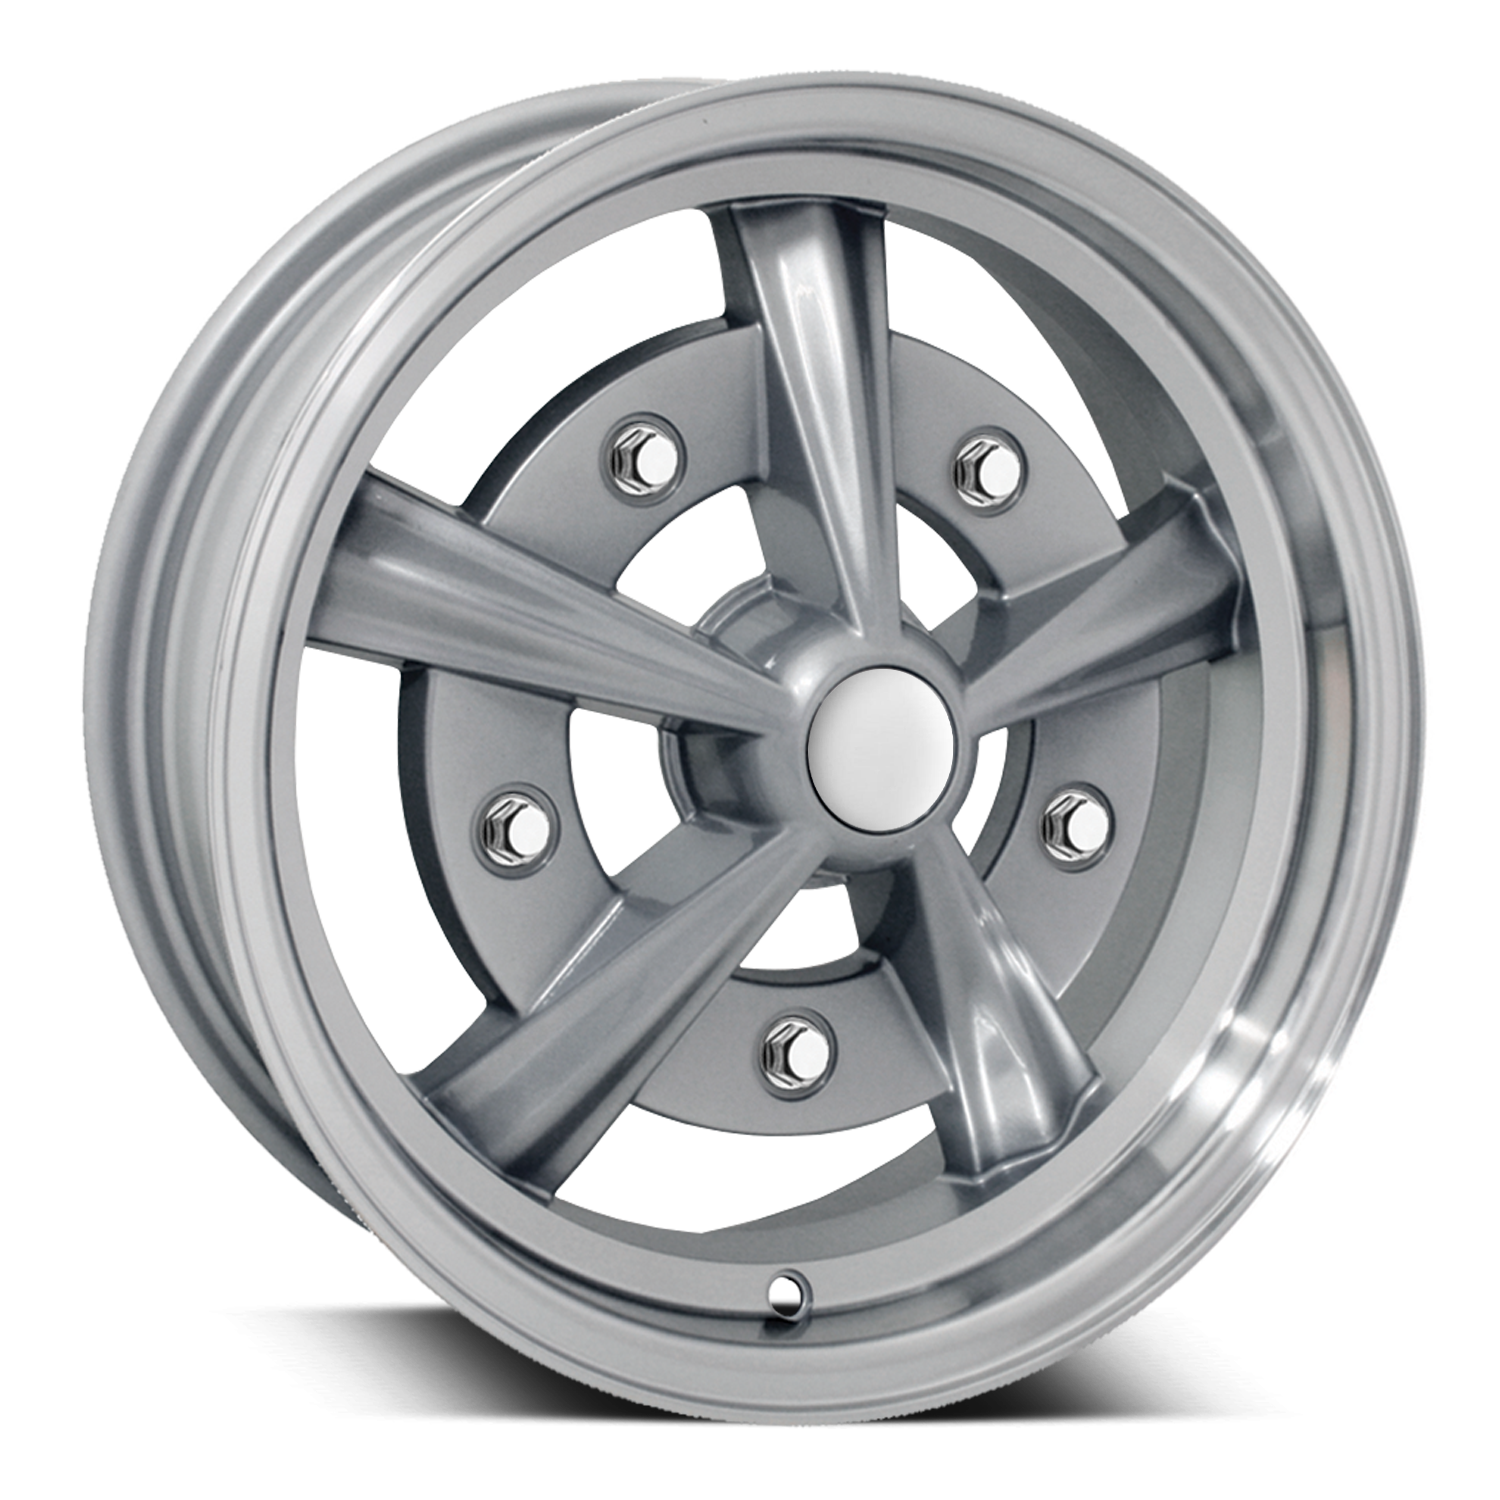 Shop Klassik Rader Dune Wheels in 15 Inch Staggered